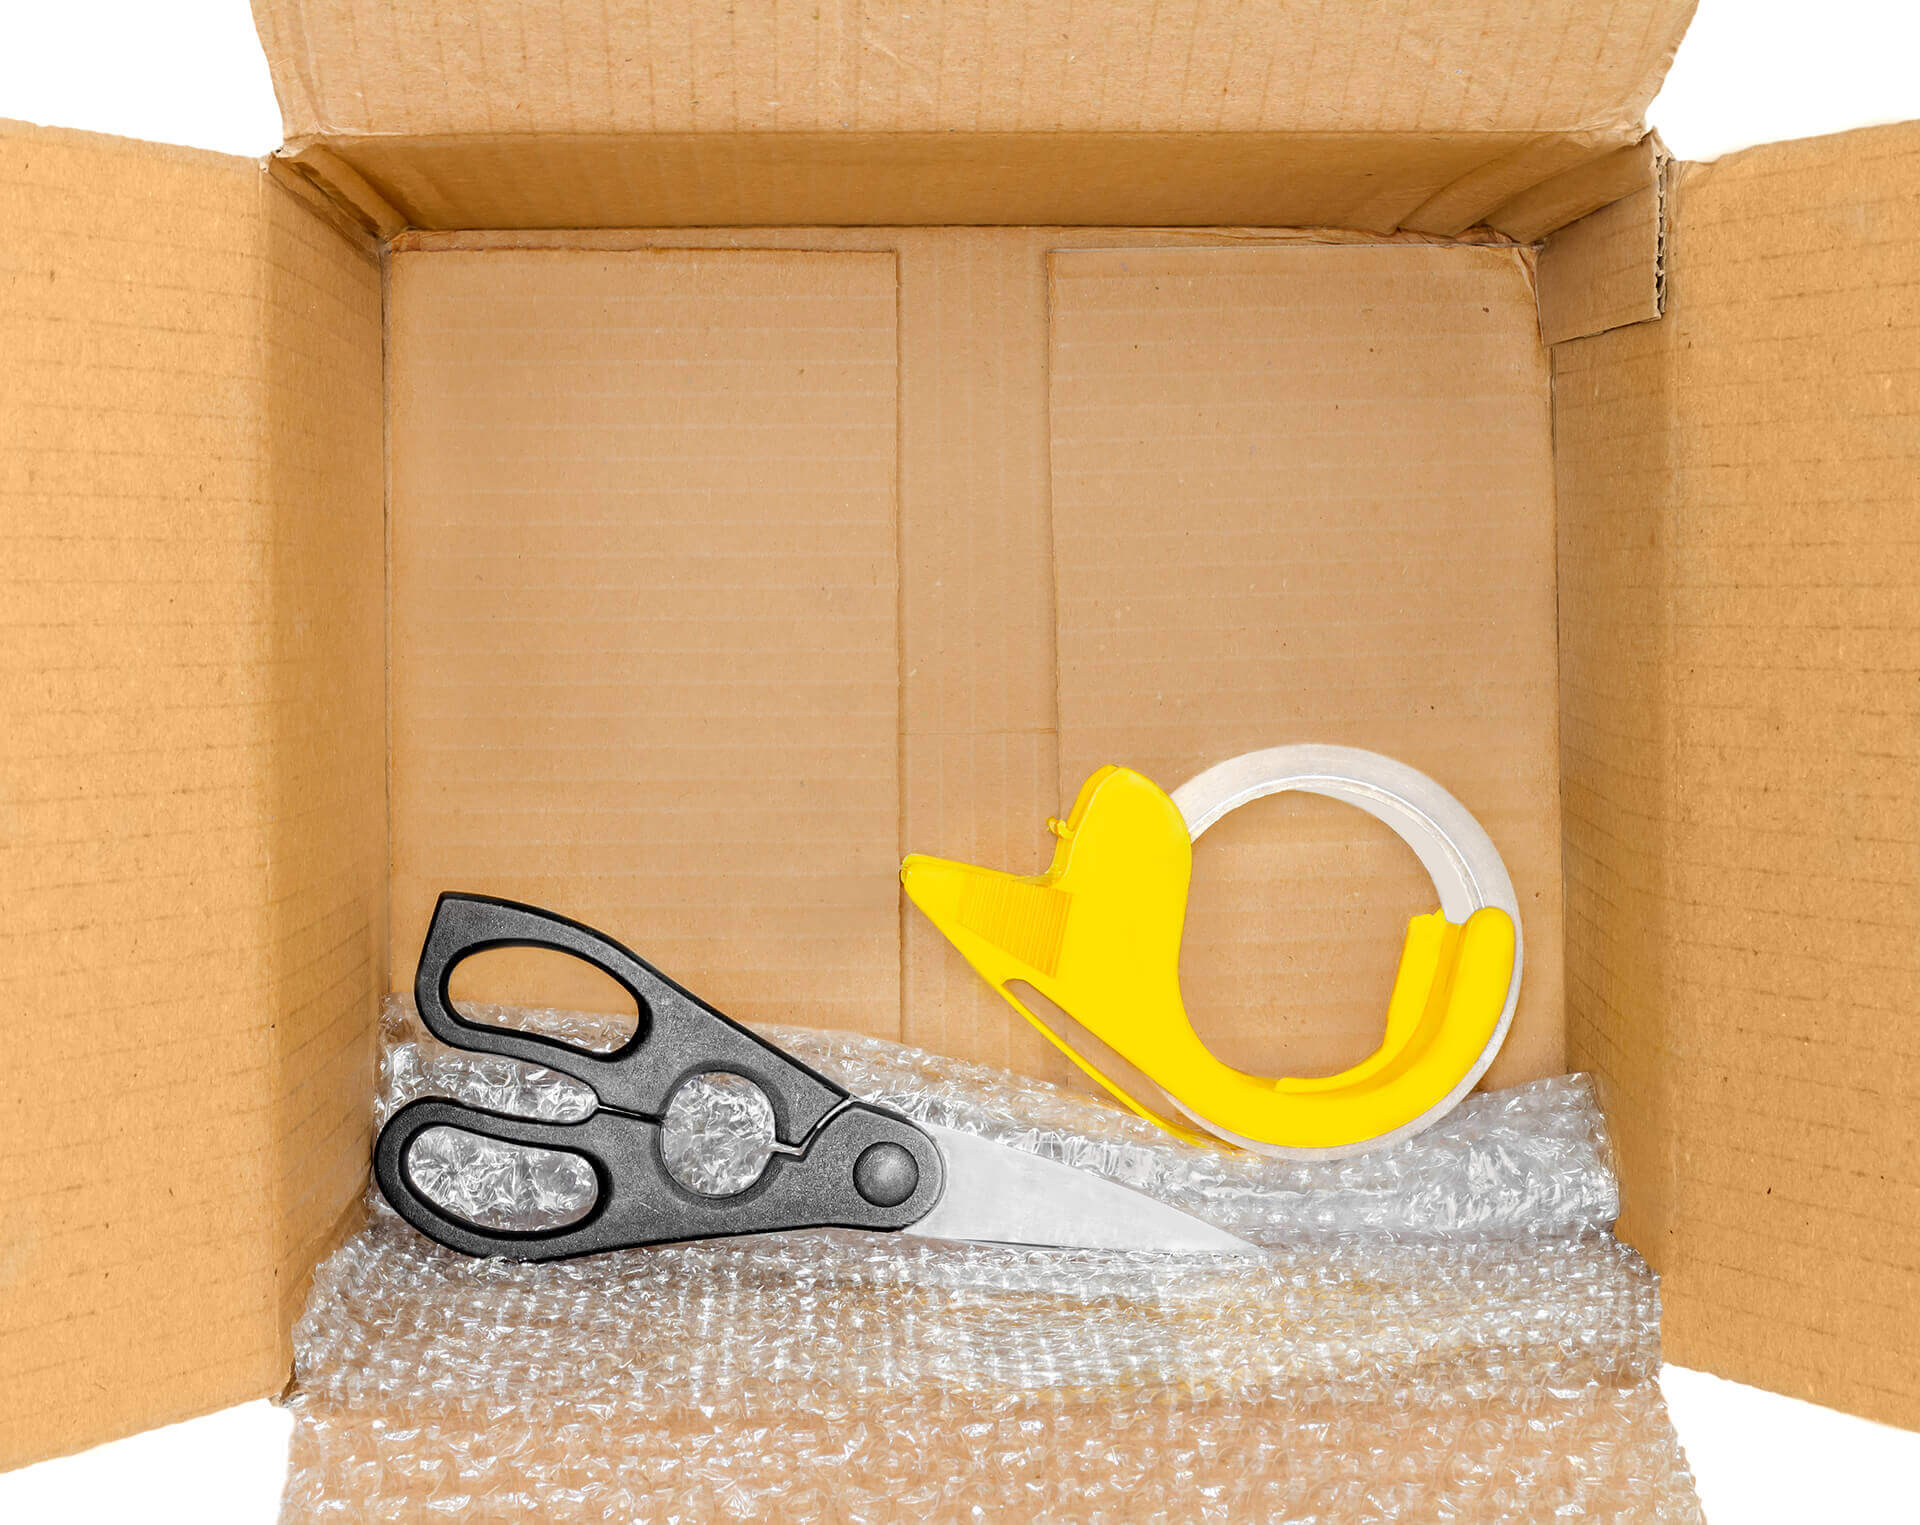 Packing tape, bubble wrap, and scissors